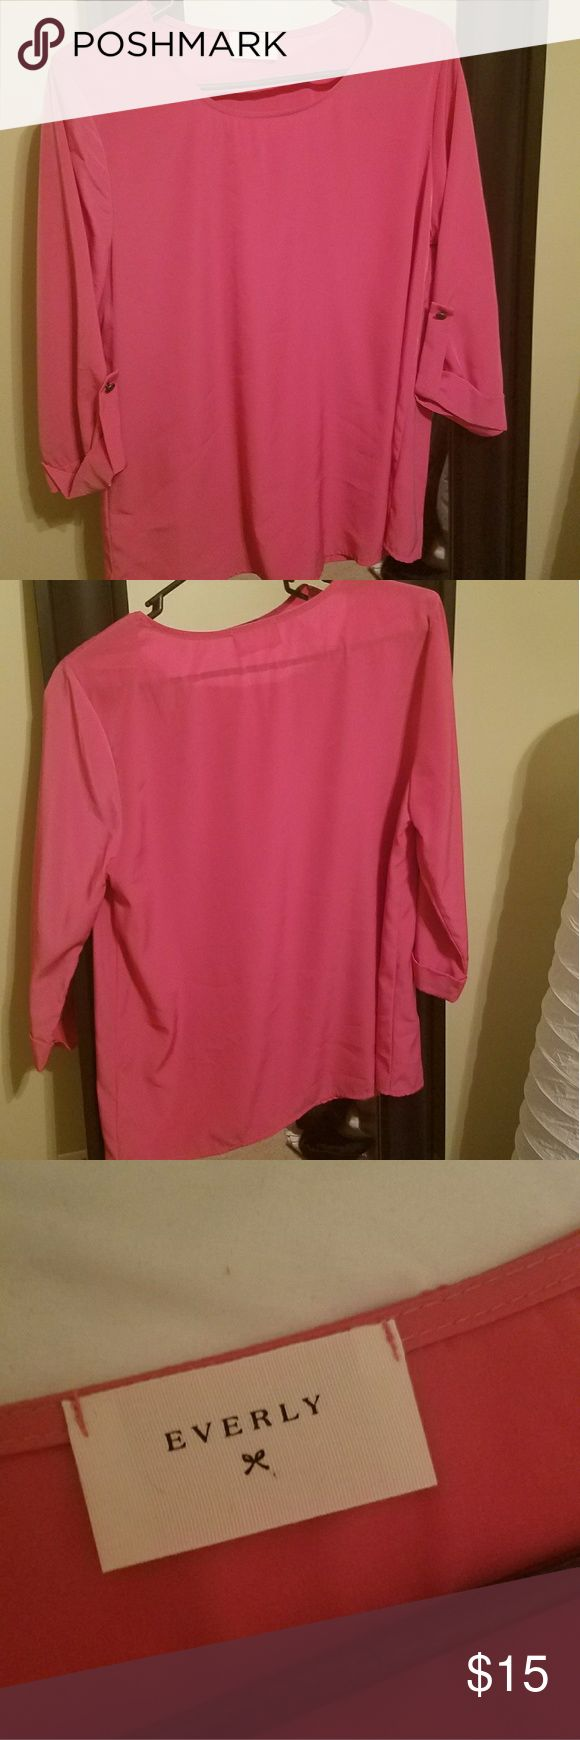 Hot pink three-quarter blouse Hot pink blouse. New, never worn. Everly Tops Blouses